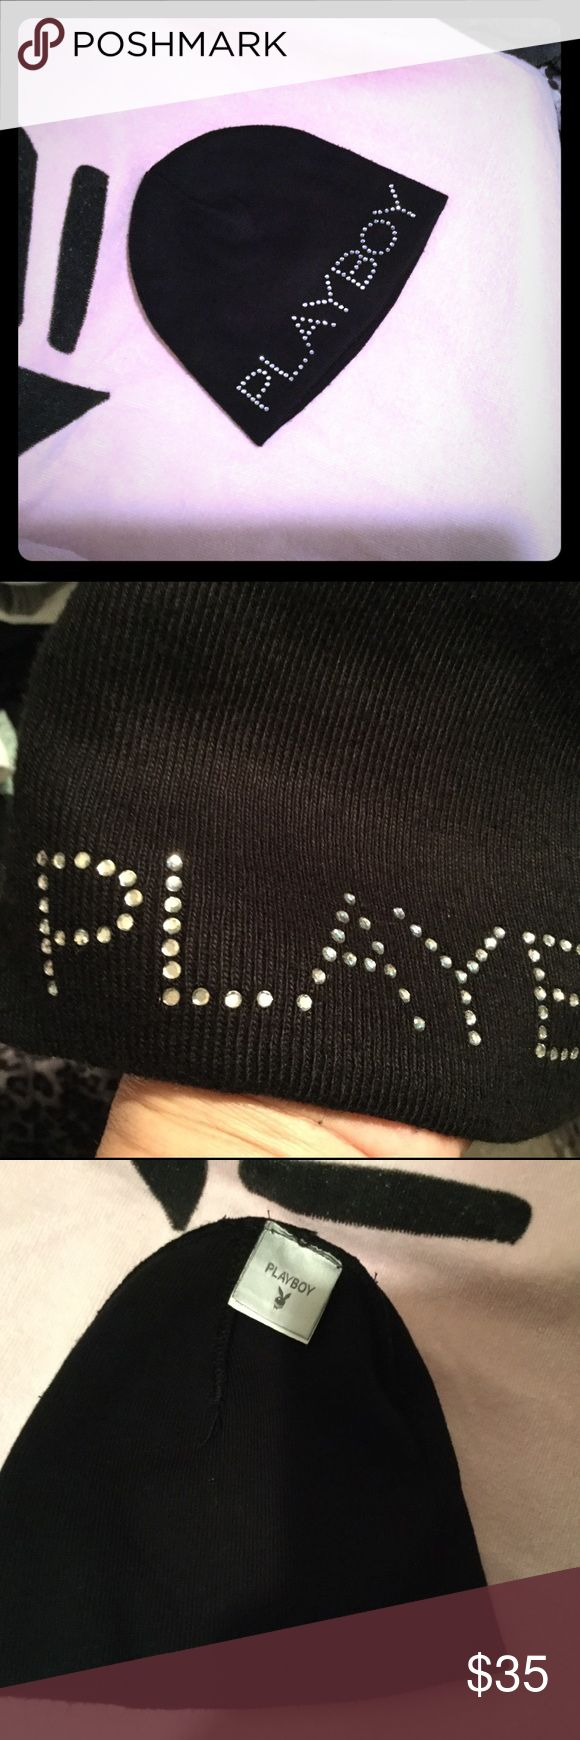 PLAYBOY Bling Beanie Hat in Black 100% Authentic Playboy, purchased from the Playboy Store online about 20 years ago and kept it!  Great condition as you can see and the bling on it is all original from Playboy.  You can see the disclaimer showing the Playboy & Rabbit Head design are marks of and used under License from Playboy Enterprises International, INC.  ONE SIZE Playboy Accessories Hats